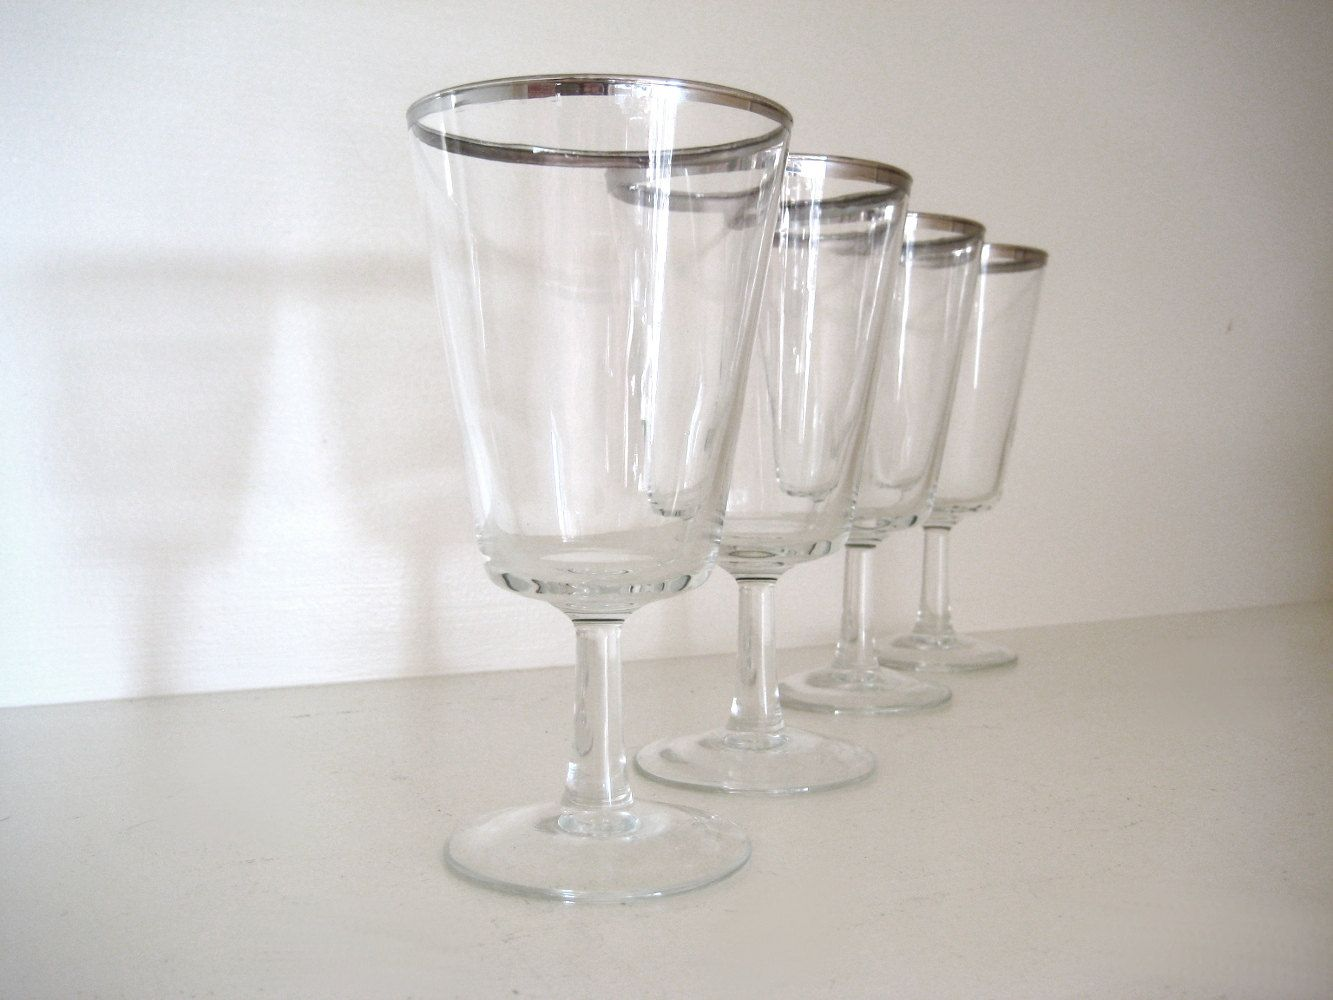 Vintage French Silver Rimmed Wine Or Cocktail Glasses 1960s Silver Rim Drinking Glasses Set Of 4 Metal Band France Cocktail Glasses French Vintage Metal Bands [ 1000 x 1333 Pixel ]